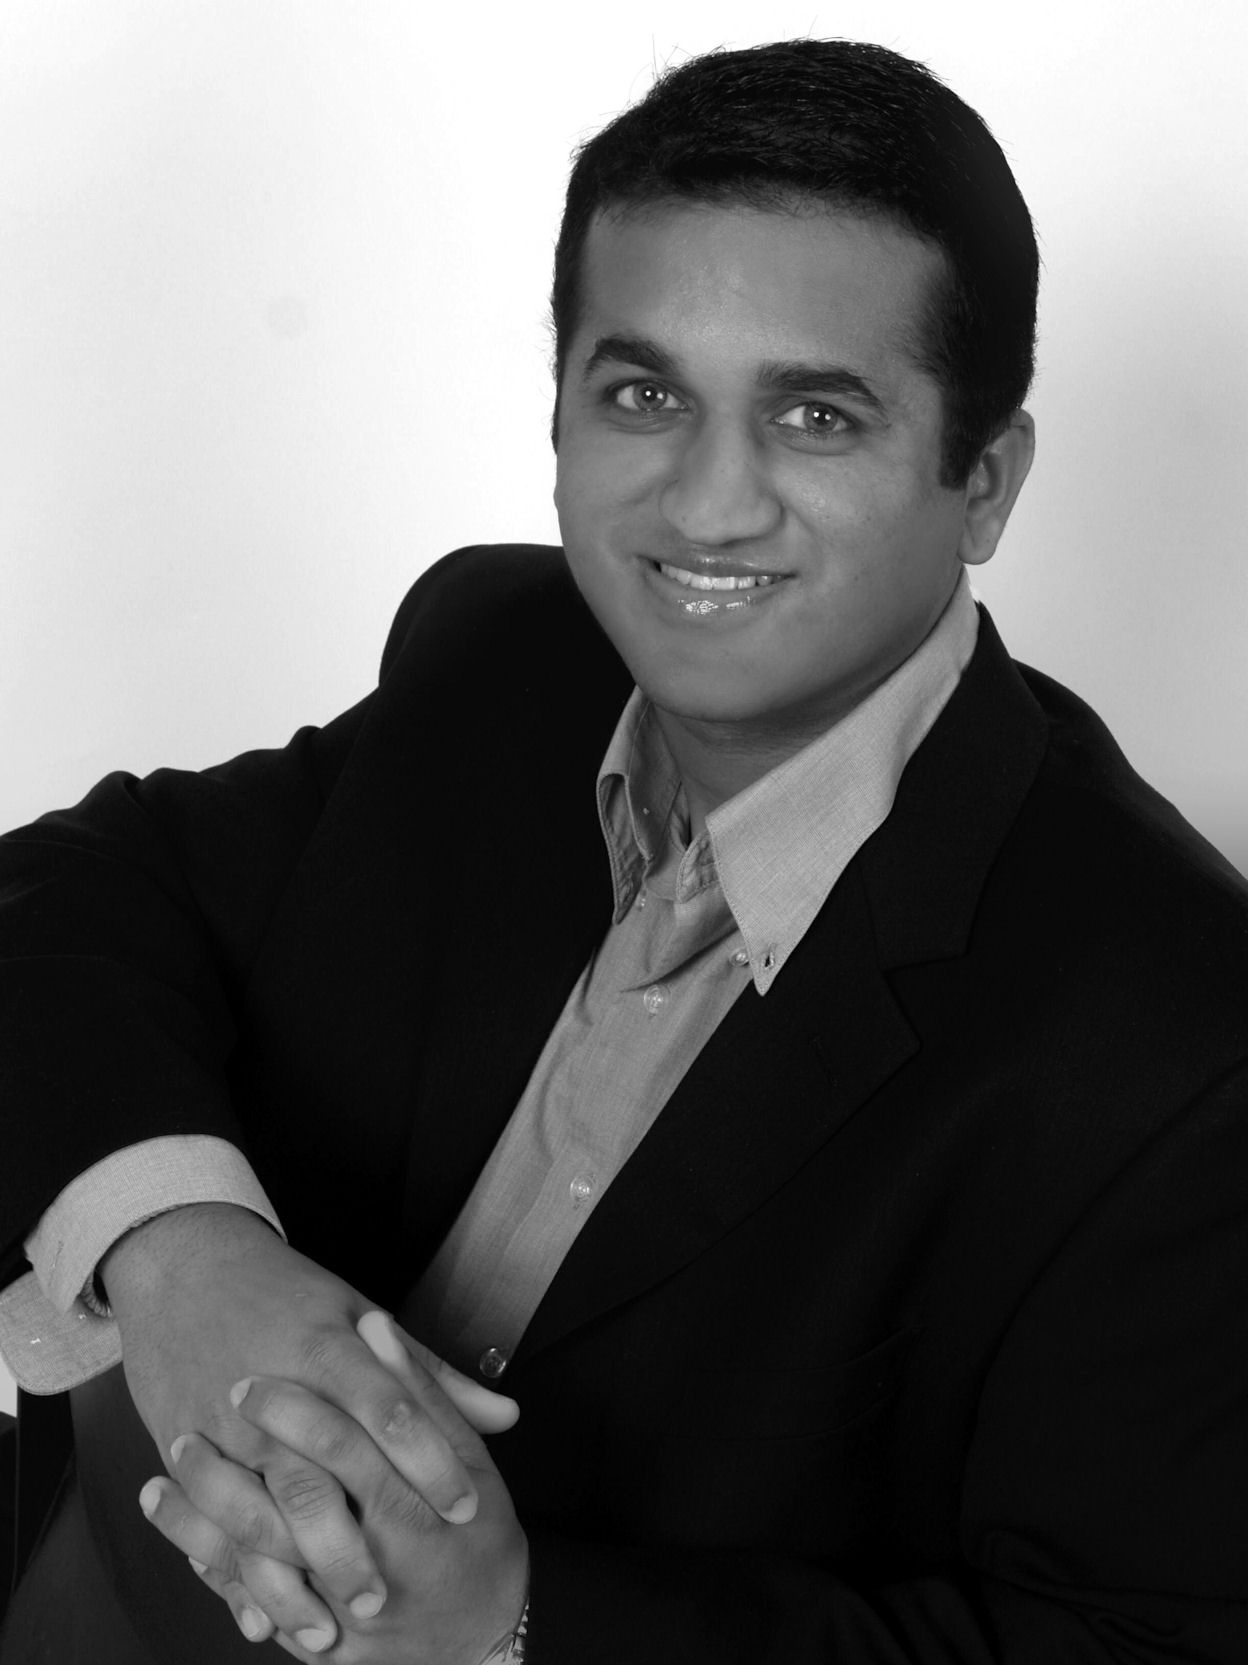 Interview with Deepak V. Bhattachar, Founder, Oneoverpi Solutions Pvt. Ltd.